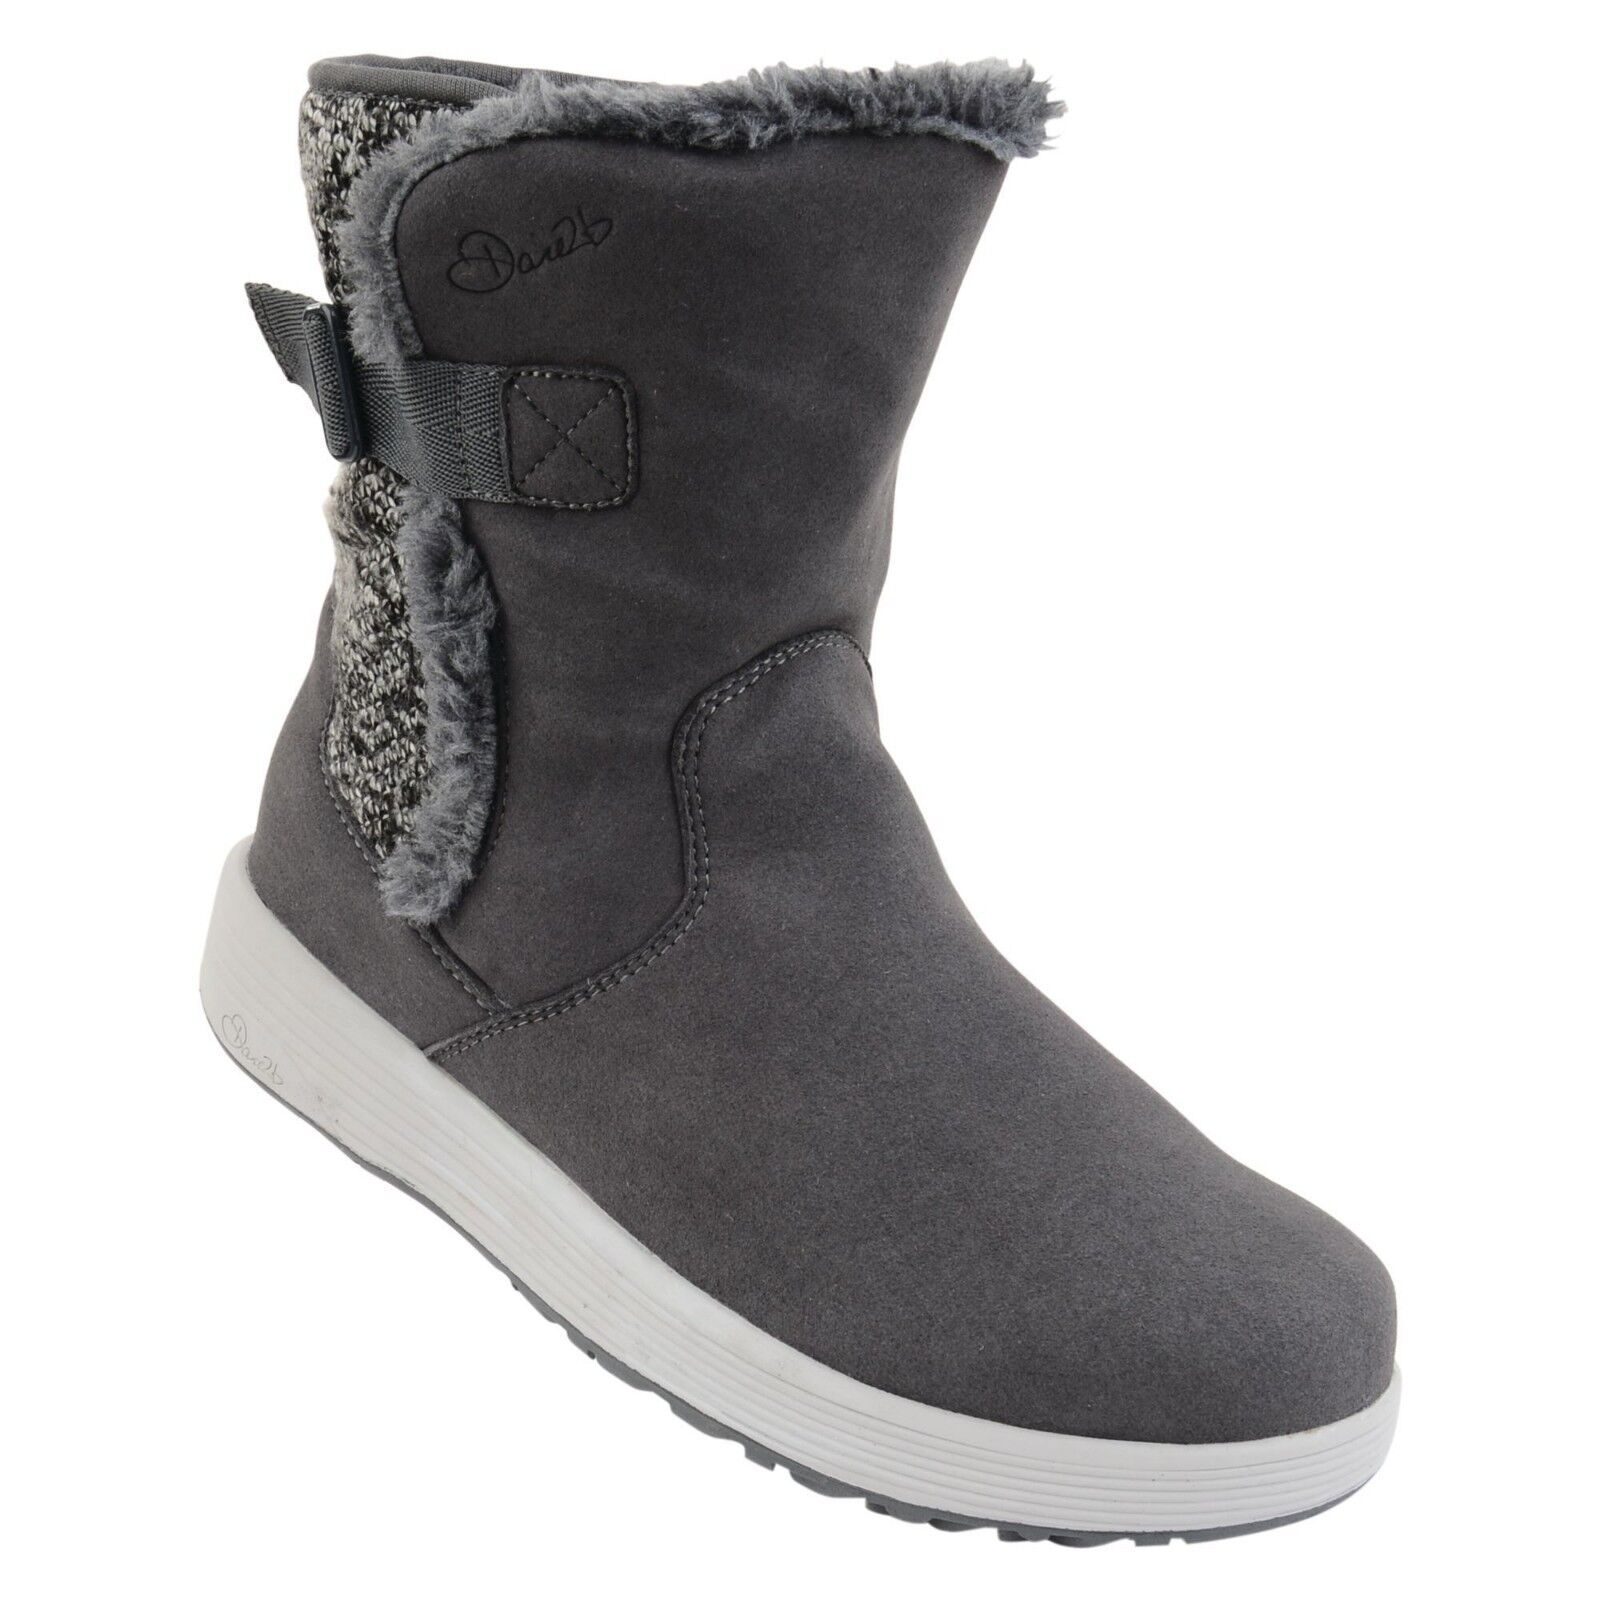 Dare 2B - Grey 'Morzine' snow boots